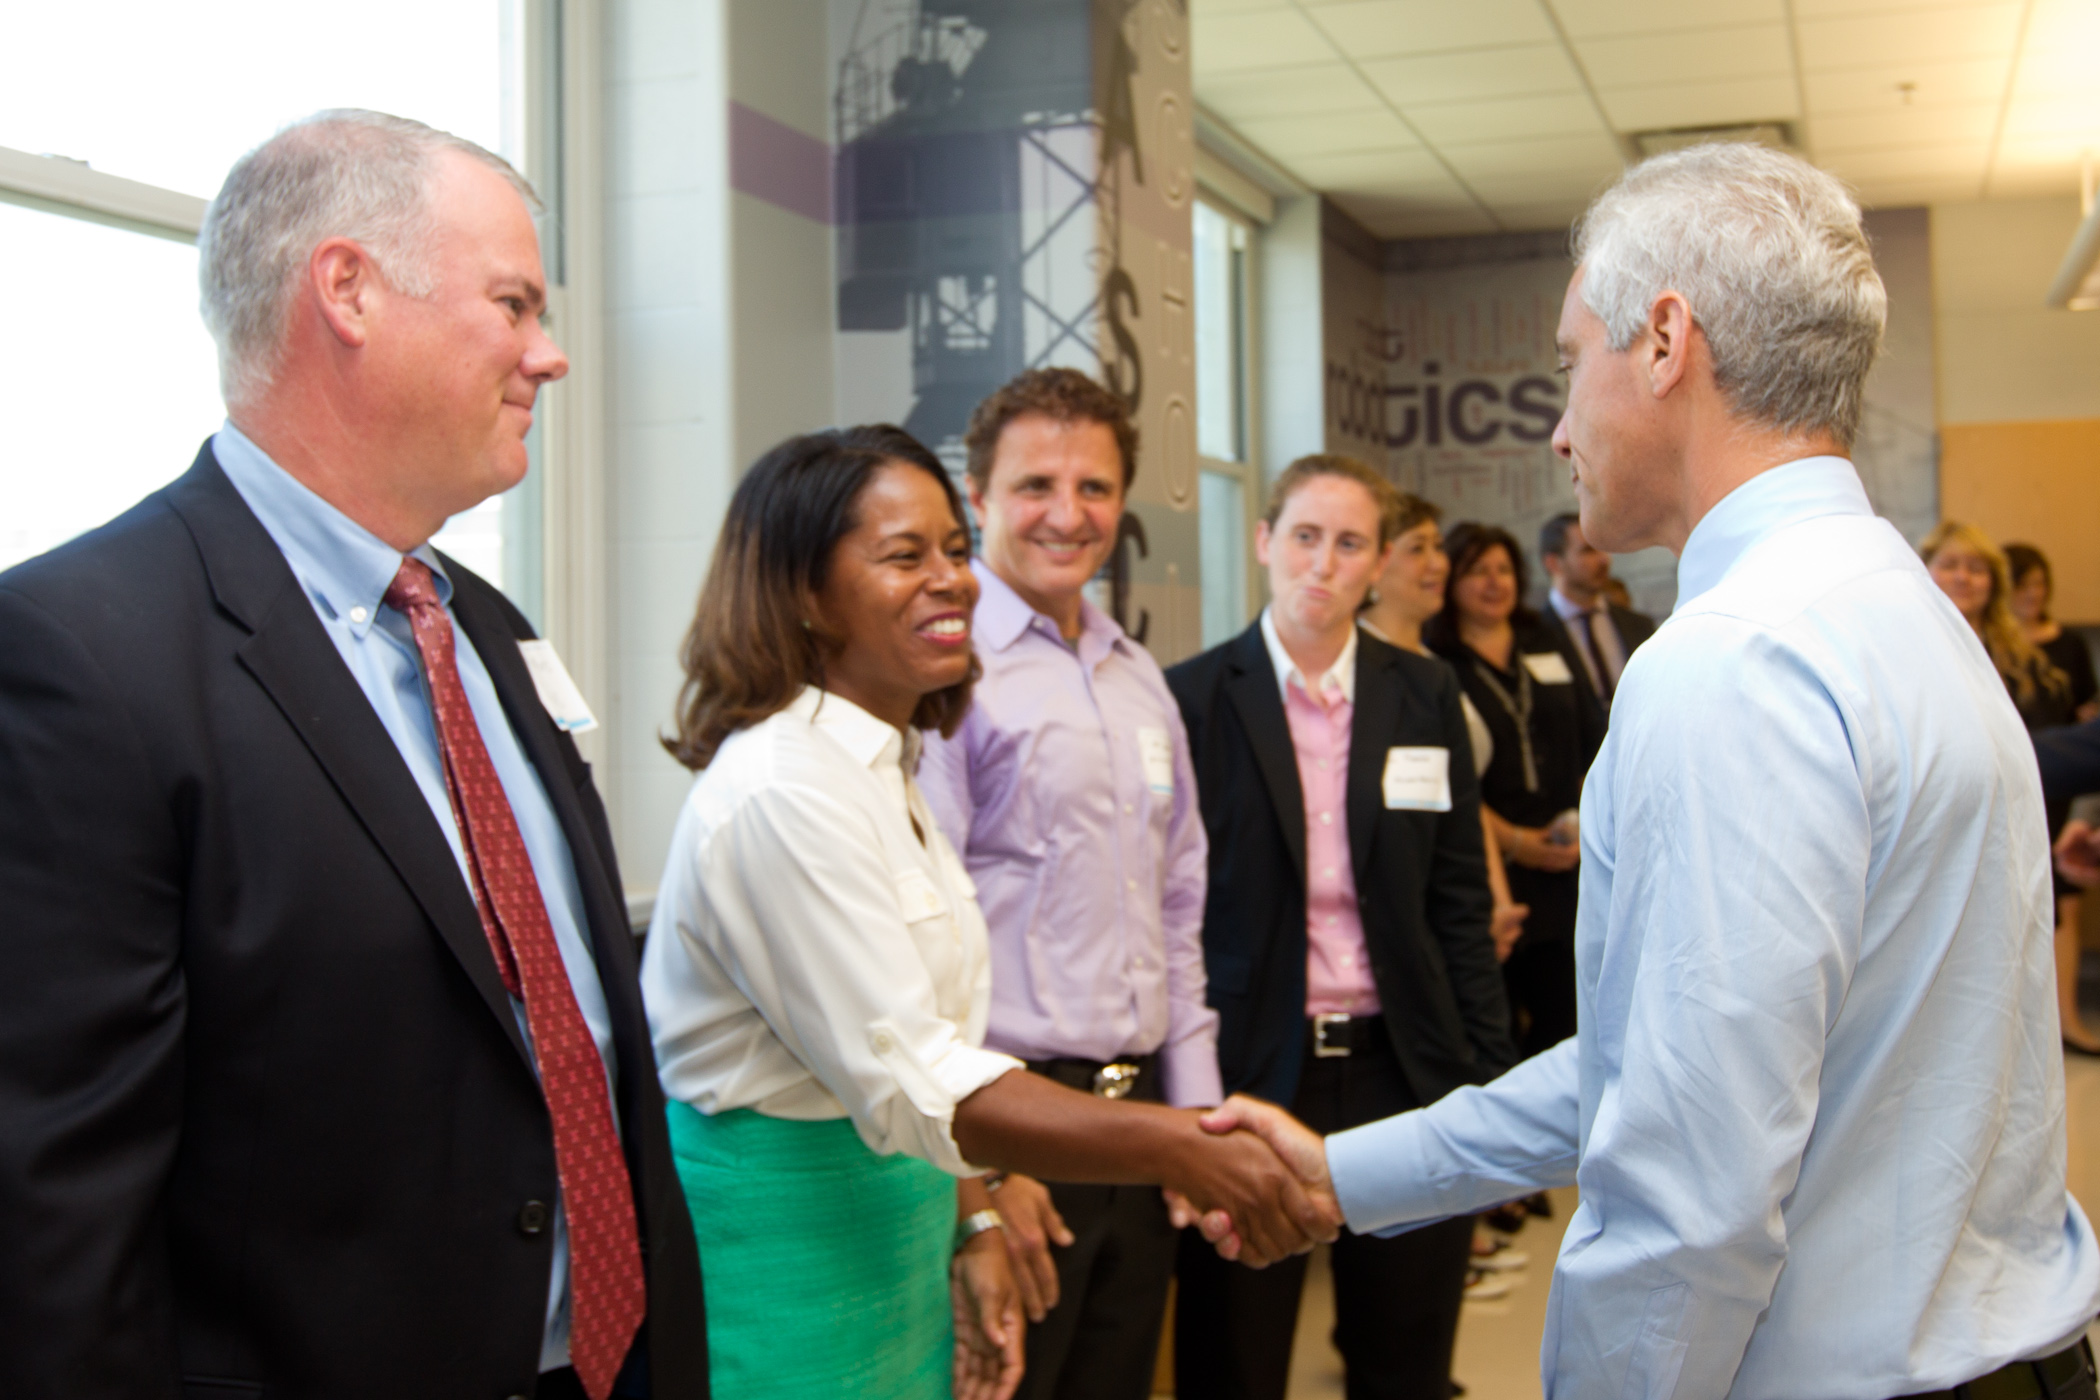 Mayor Emanuel joins corporate engineering partners and CPS leadership in touring a new engineering lab at Westinghouse College Prep, made possible with support of corporate partner Paschen.